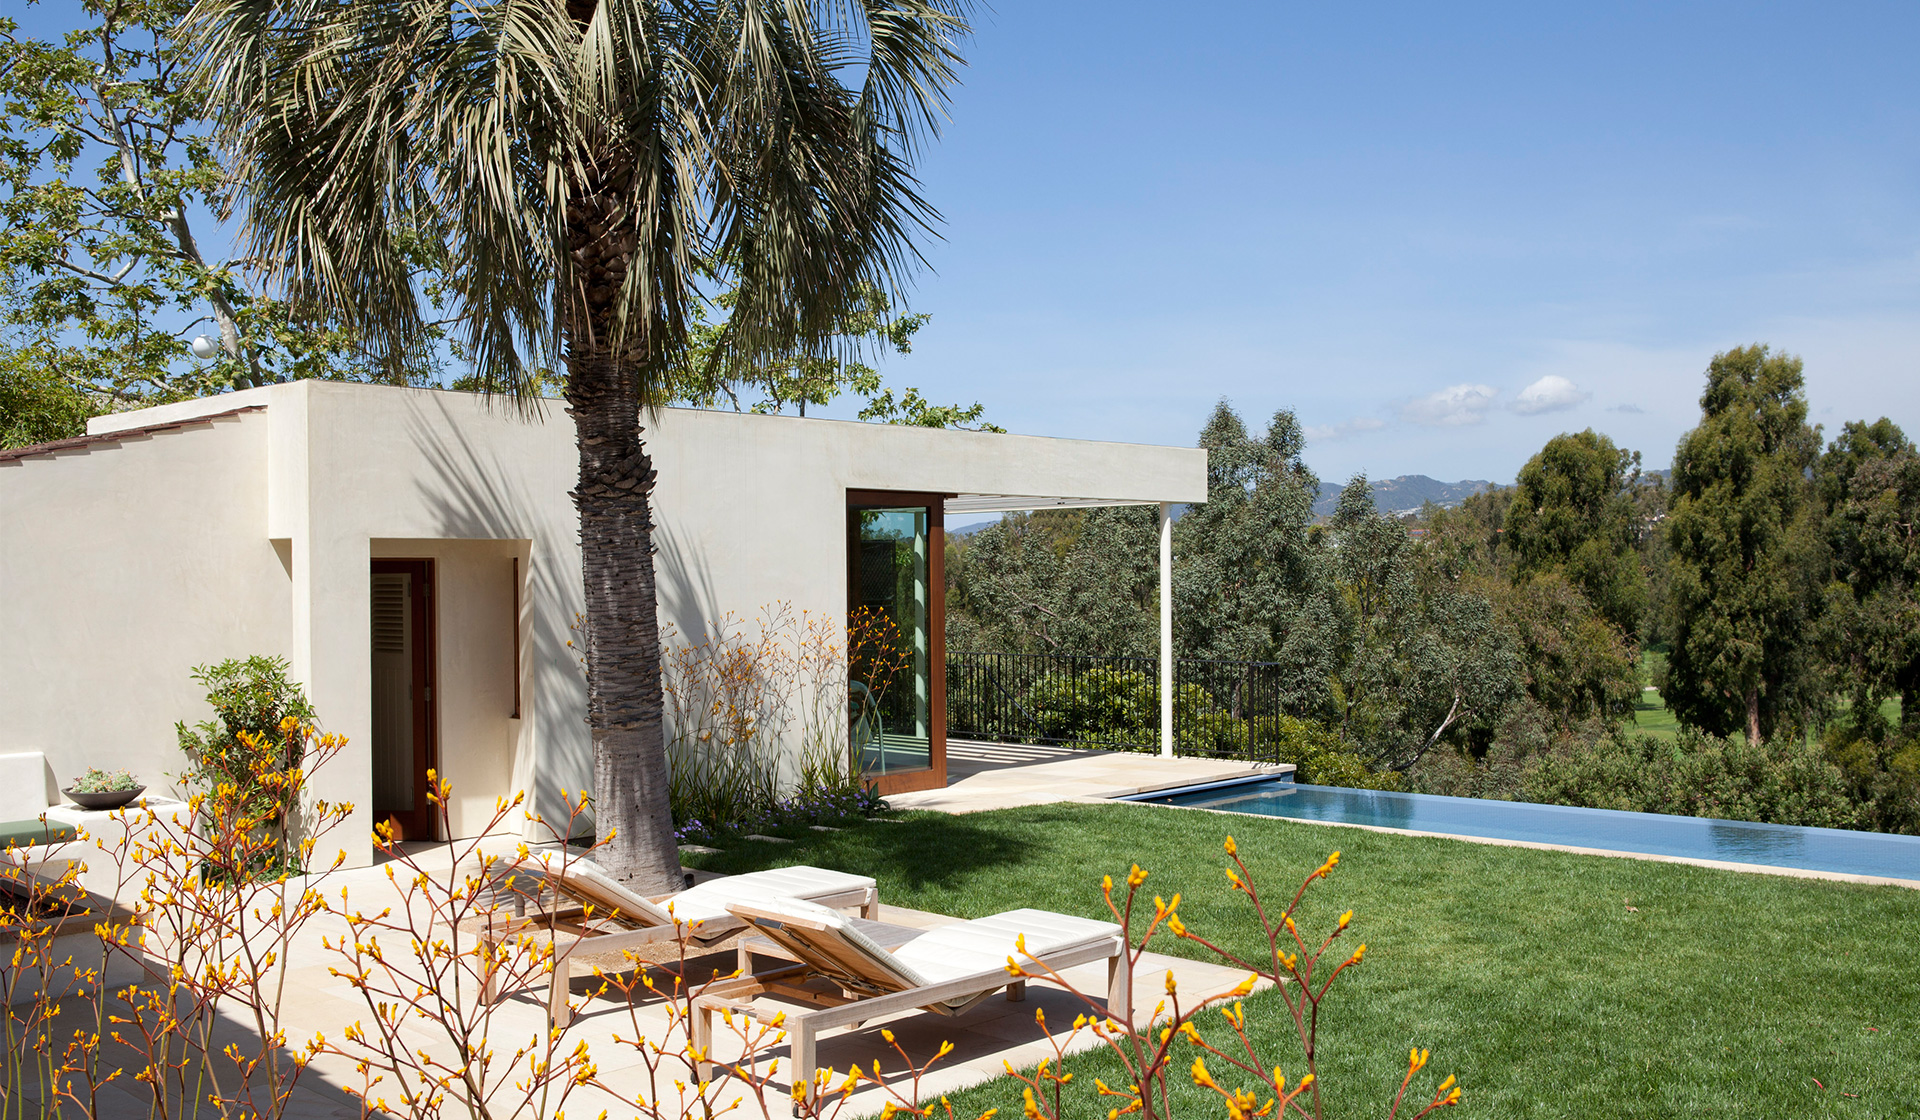 Modern Adobe House In California By Dutton Architects